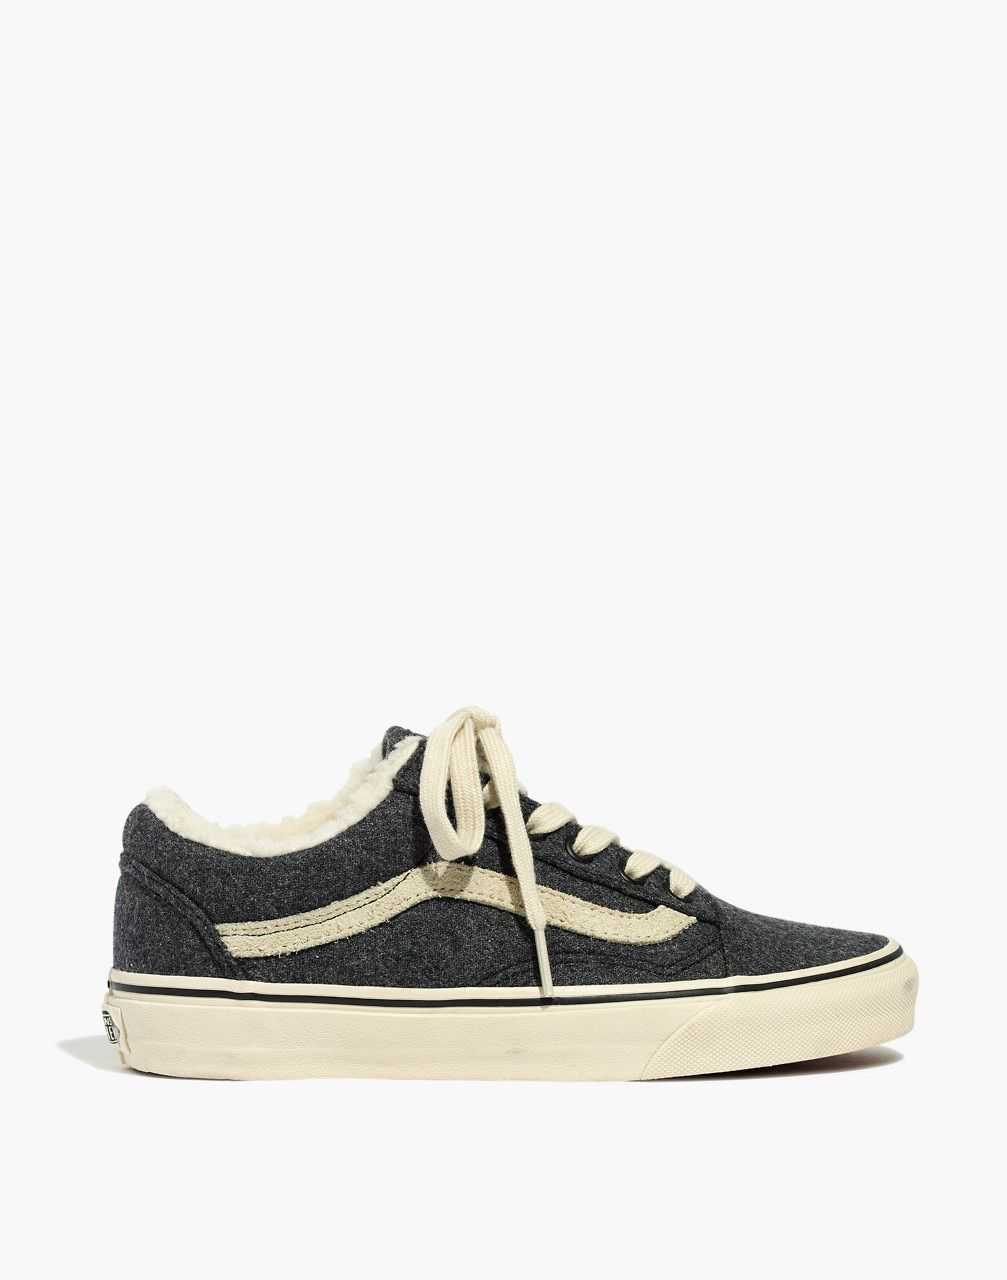 7b4304693ff Madewell x Vans® Unisex Old Skool Lace-Up Sneakers in Flannel and Sherpa in  black true white image 2